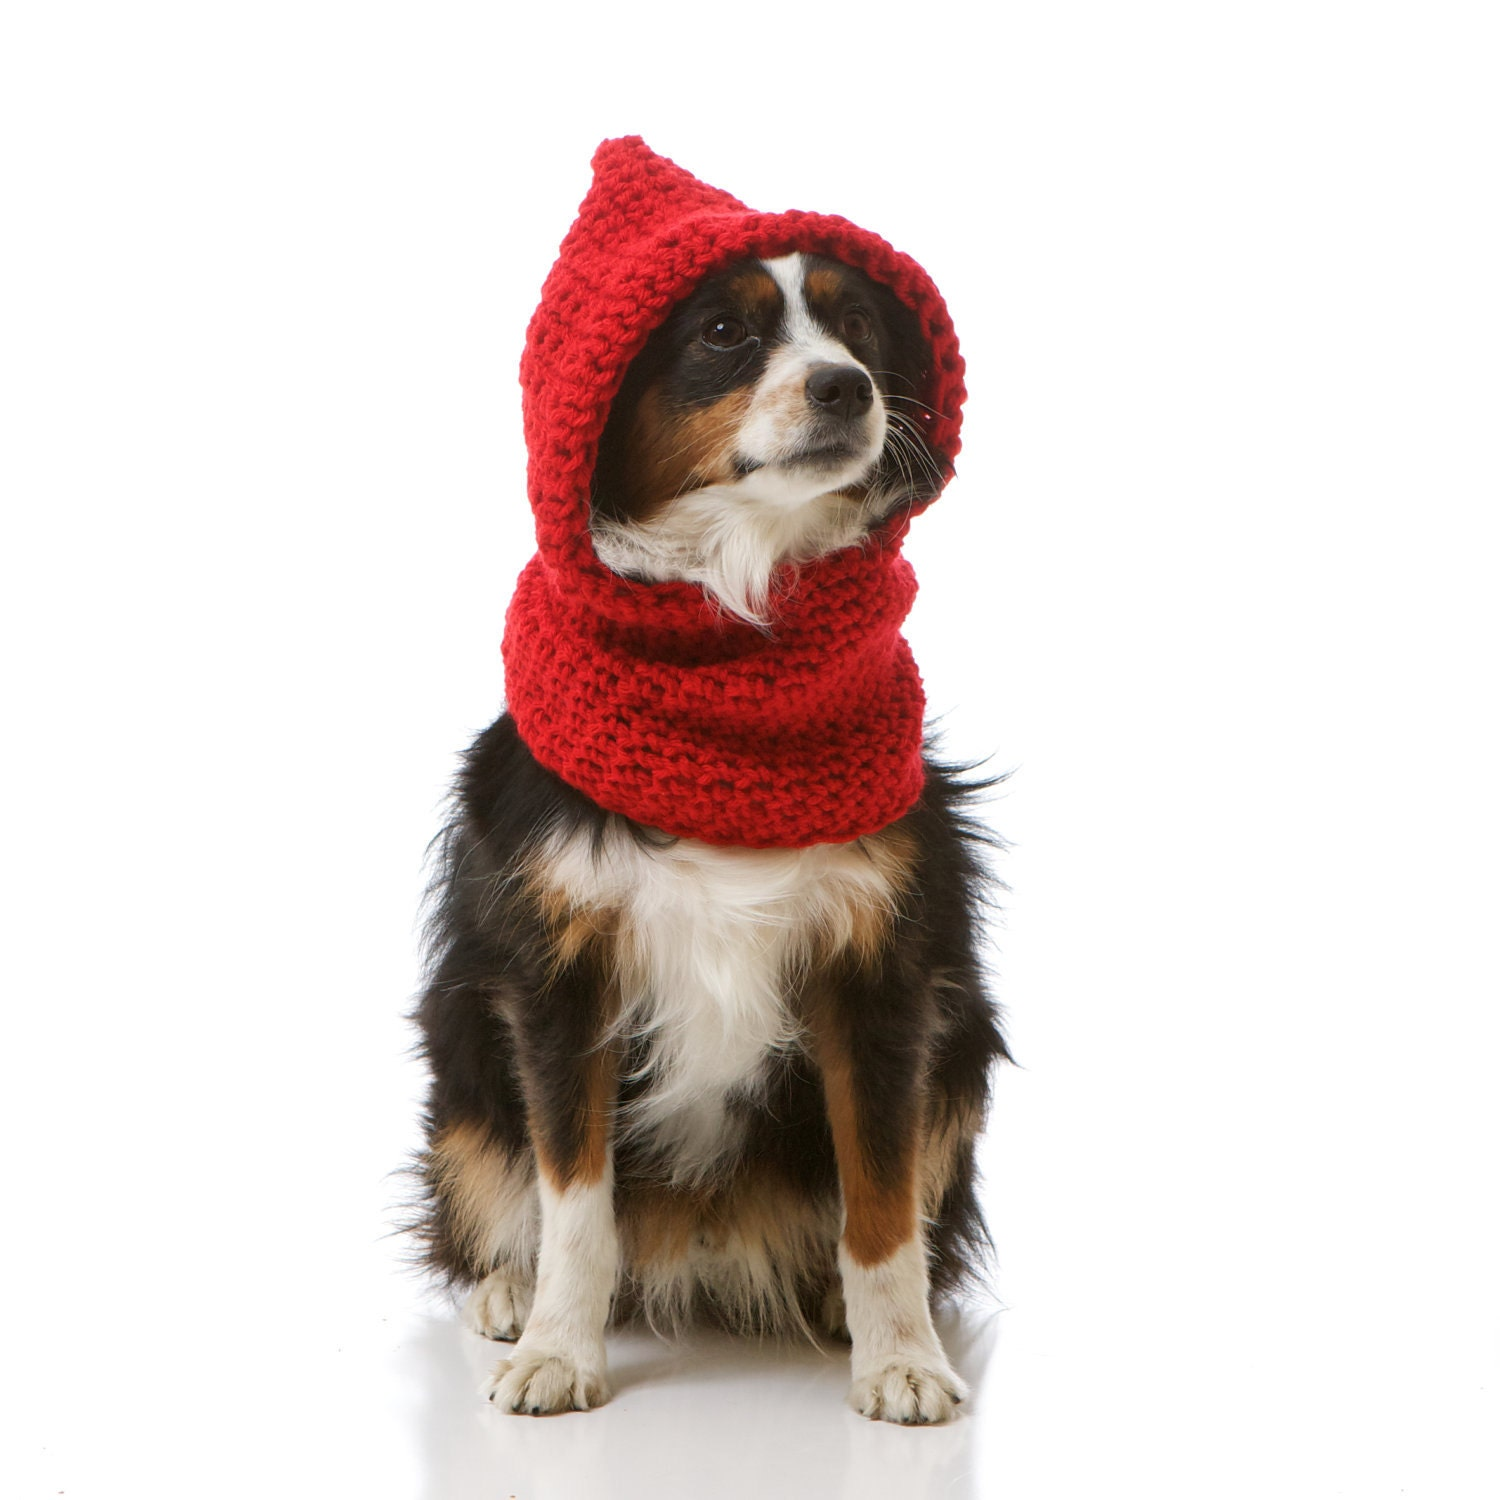 Hoodwinked Slouchy Hooded Cowl for Dogs, Cozy Doggie Sweater Shown in Scarlet Red: Choose From 30 Colors (Small/Med)